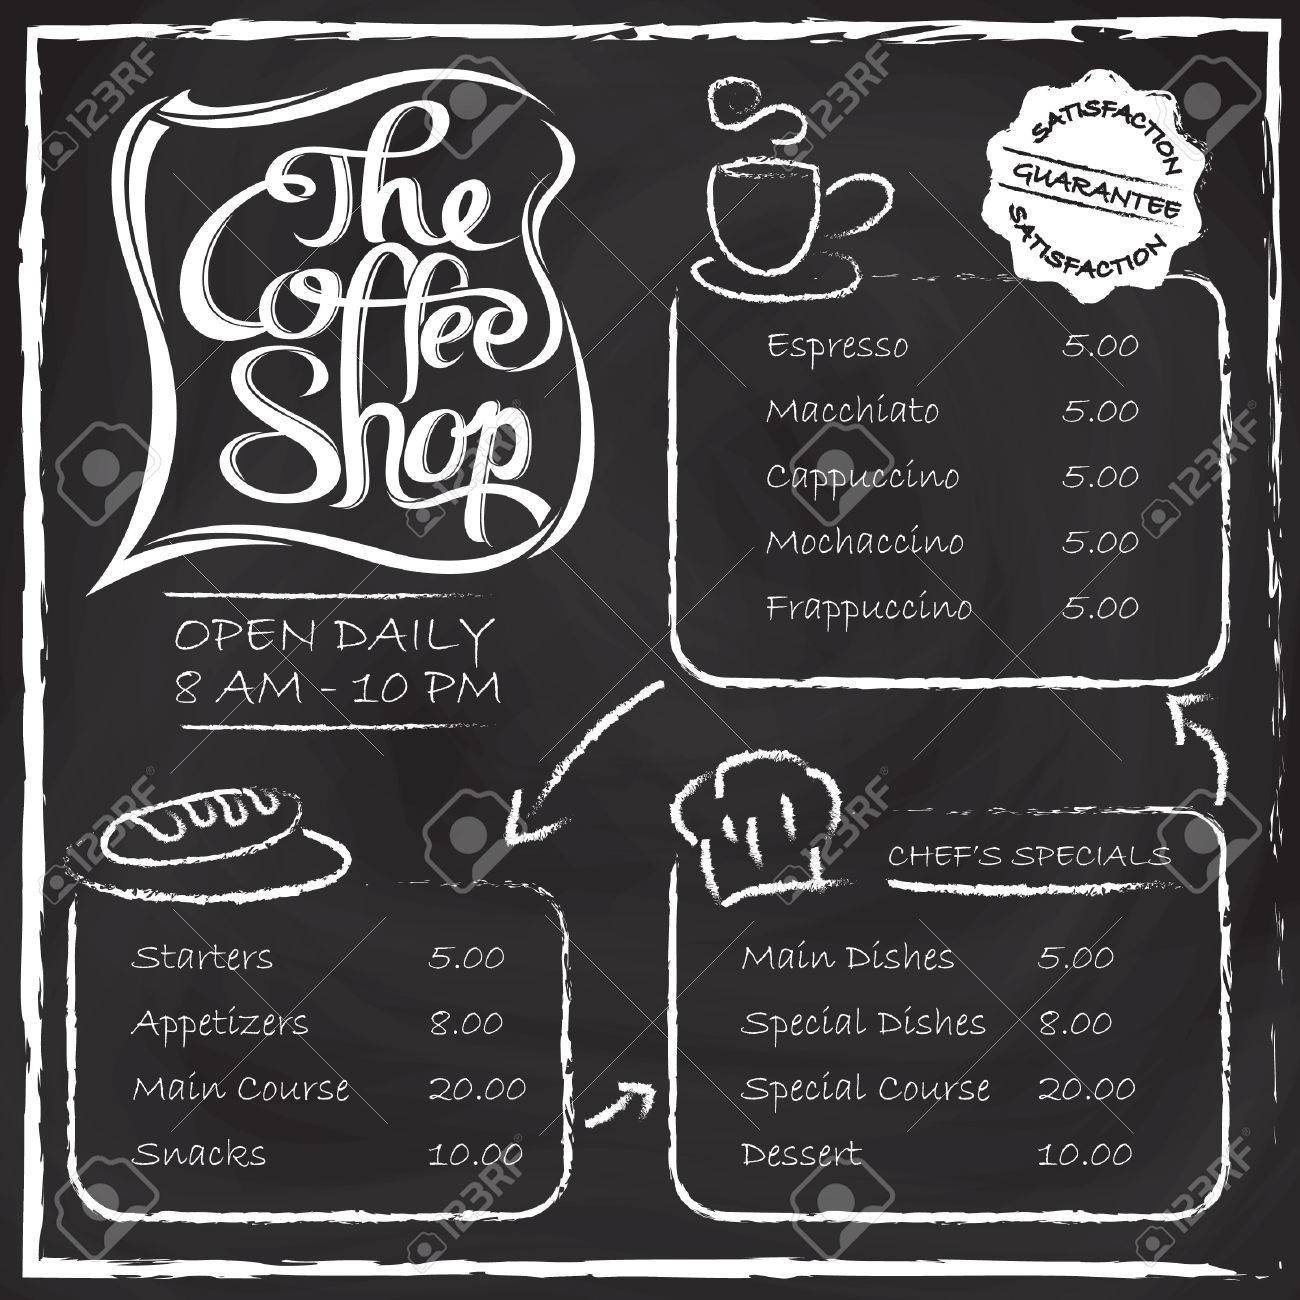 the coffee shop menu royalty free cliparts, vectors, and stock